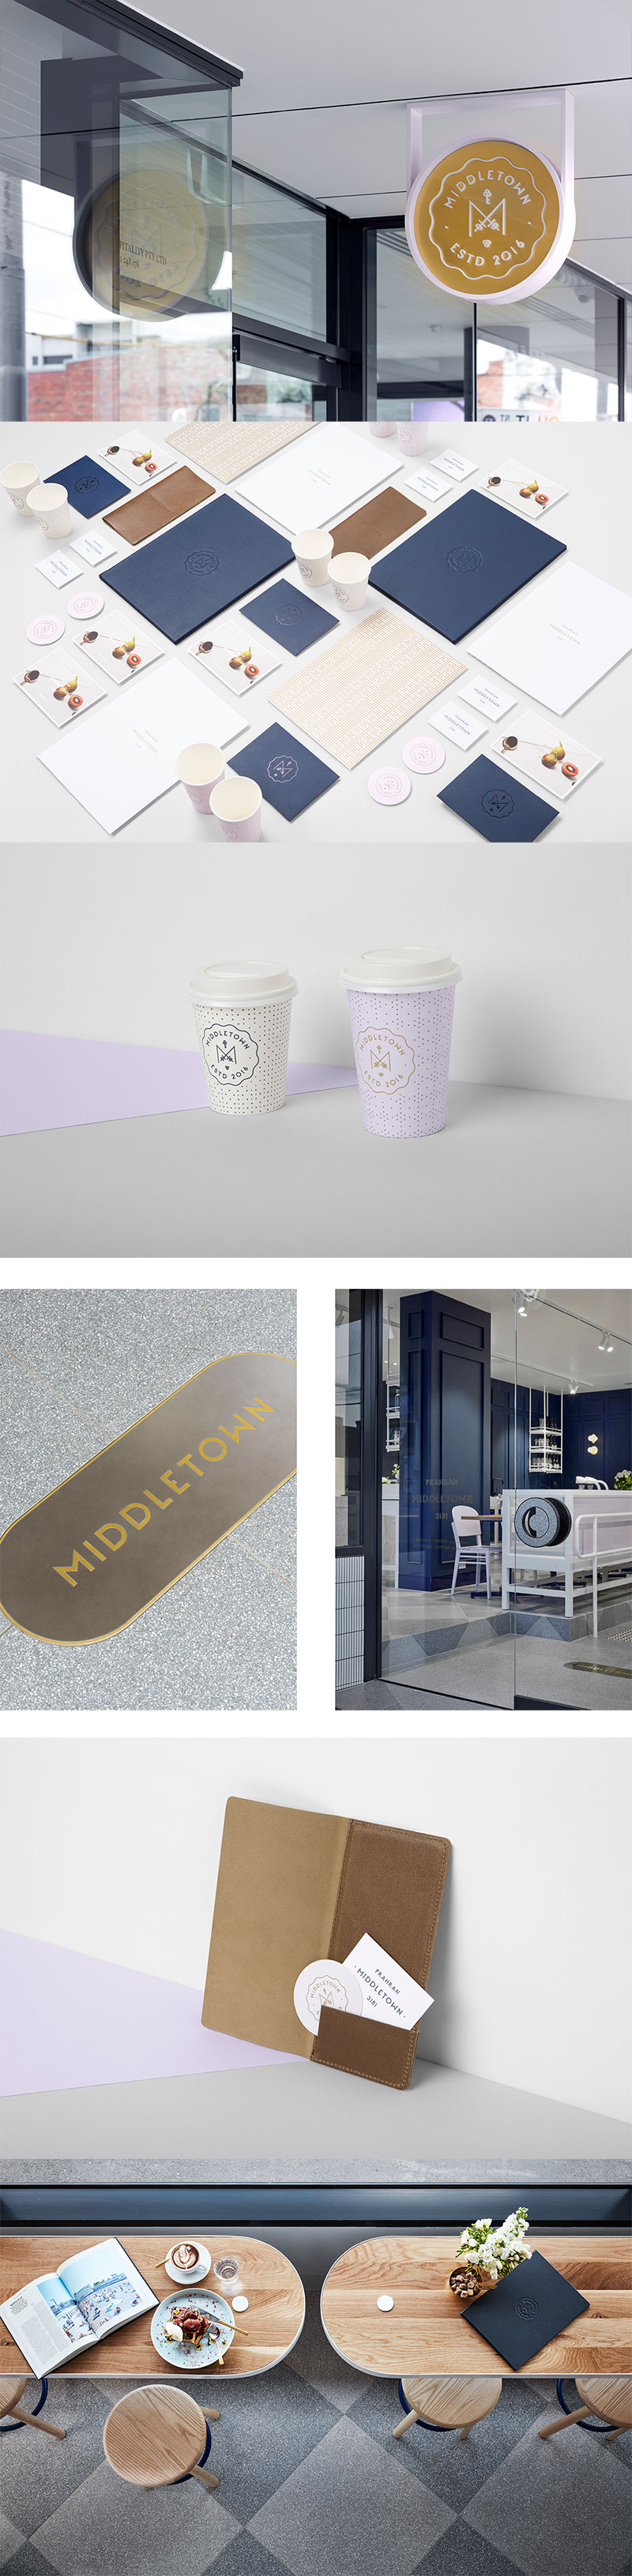 Middletown Cafe by Pop & Pac